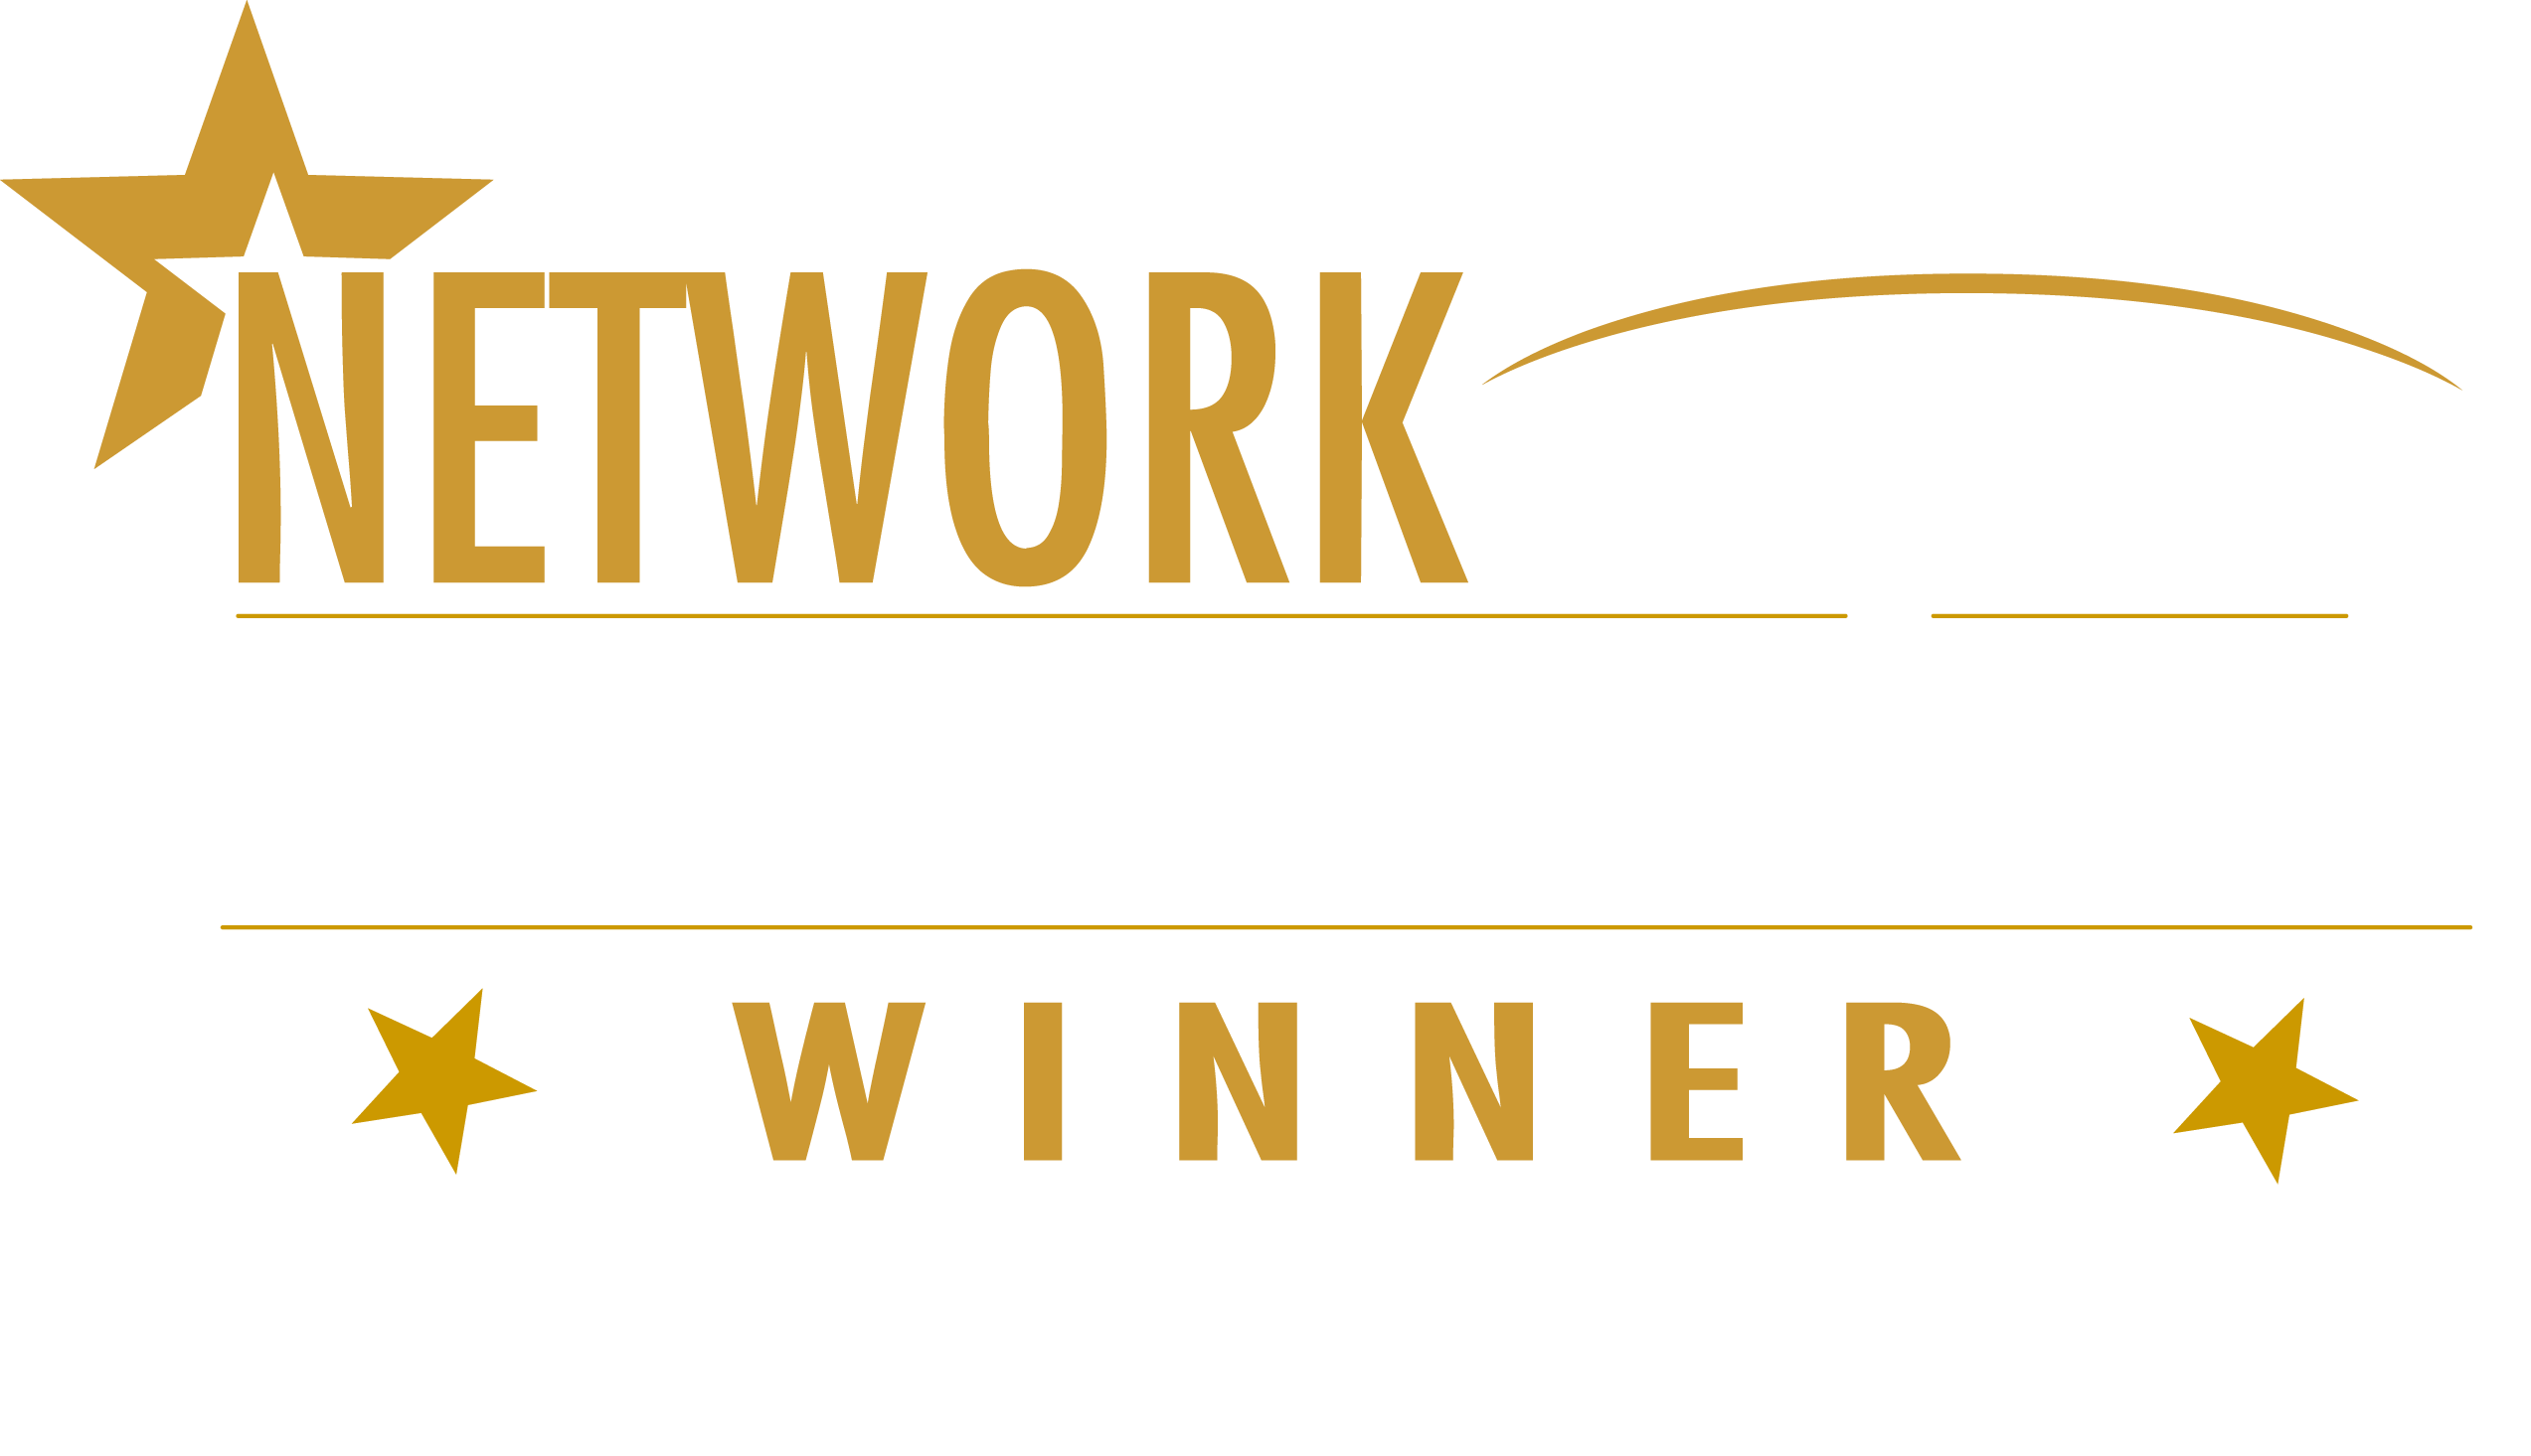 THE ONE TO WATCH COMPANY WhiteVer